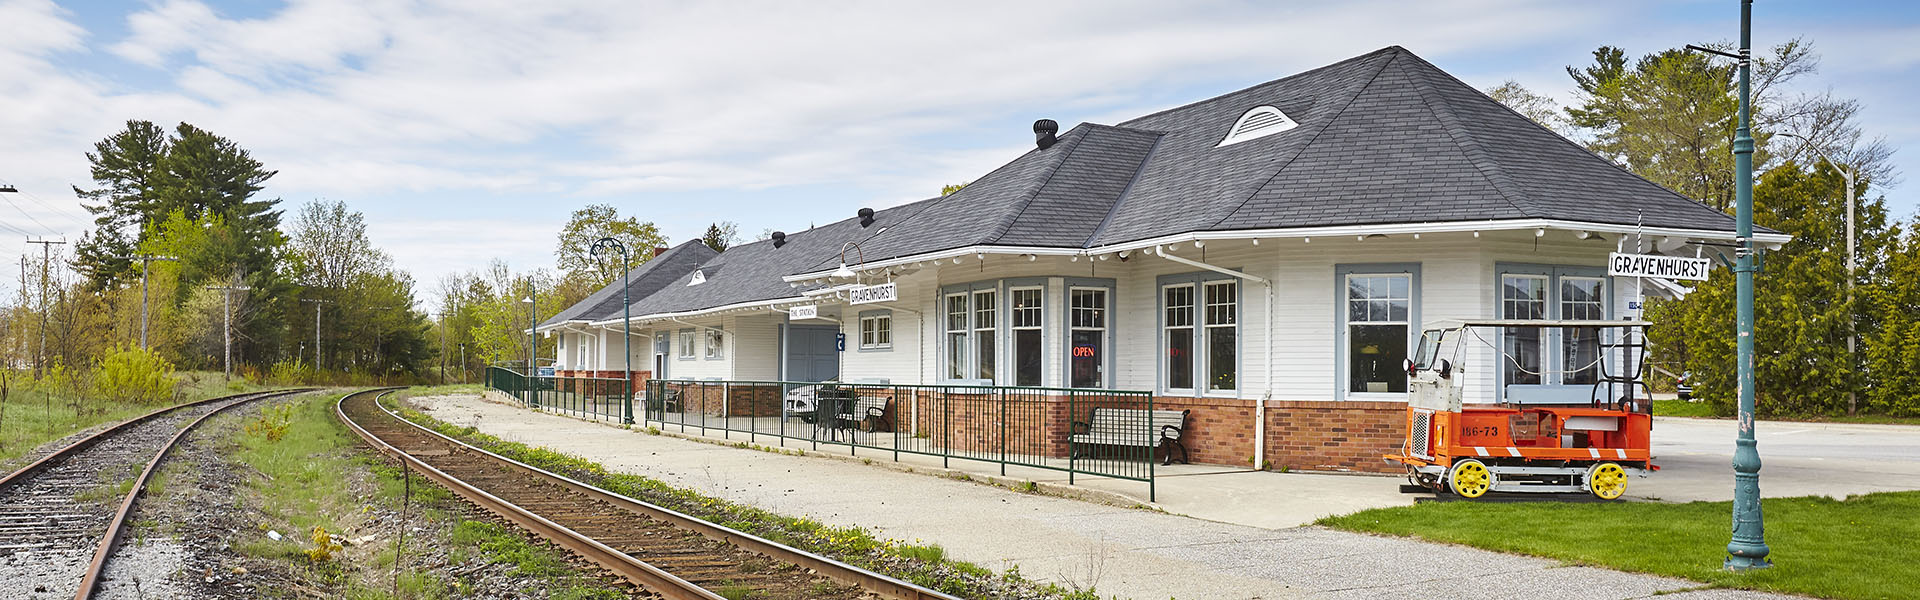 Gravenhurst Train Station